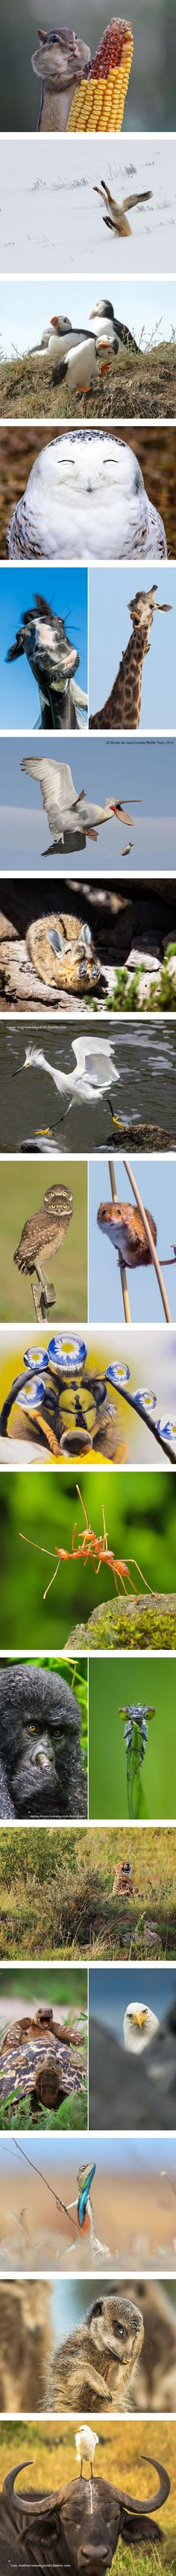 2016 Comedy Wildlife Photography Awards (By Comedy Wildlife Photography) - 9GAG